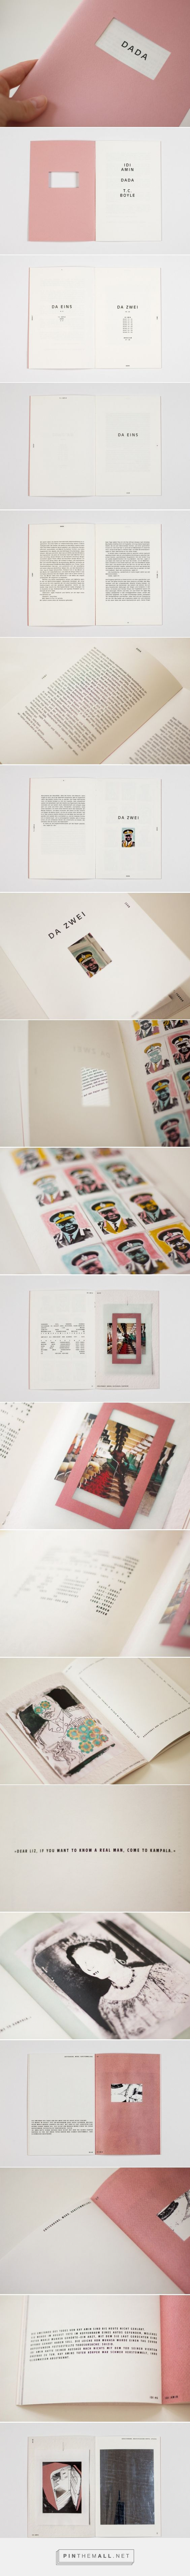 Dada... - a grouped images picture - Pin Them All: